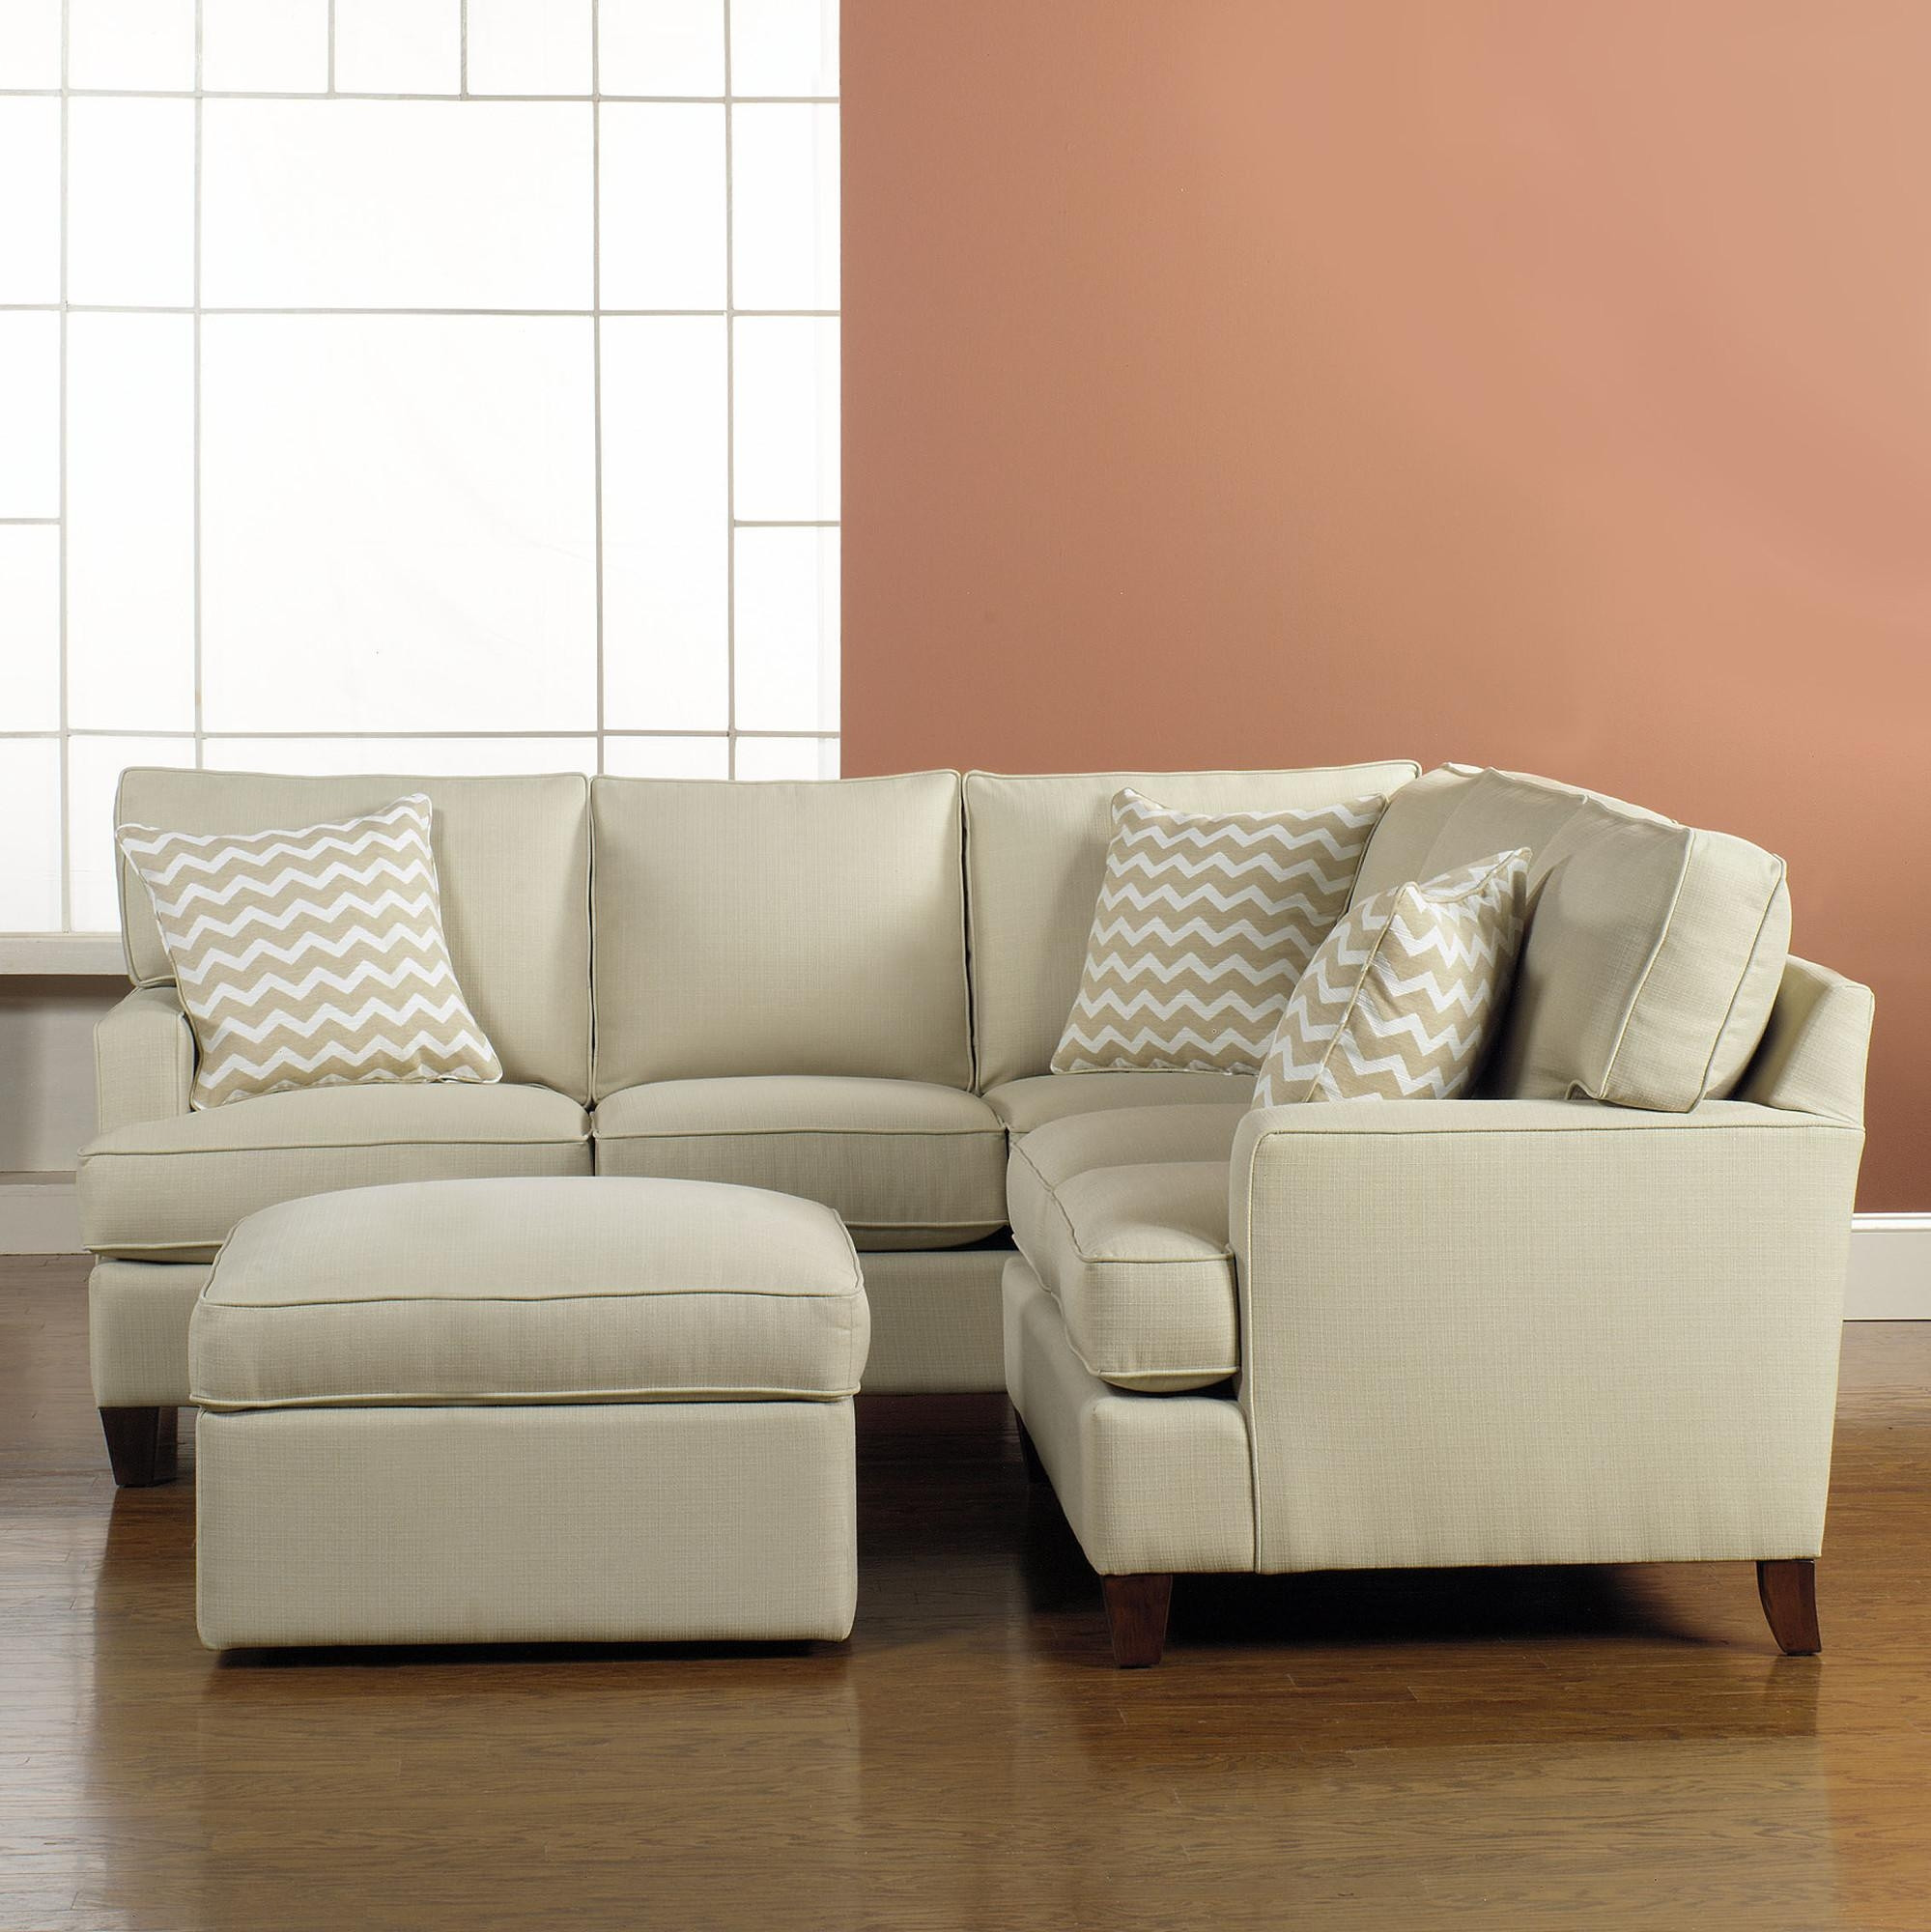 Best ideas about Mini Sectional Sofa . Save or Pin 20 s Sectional Sofas in Small Spaces Now.